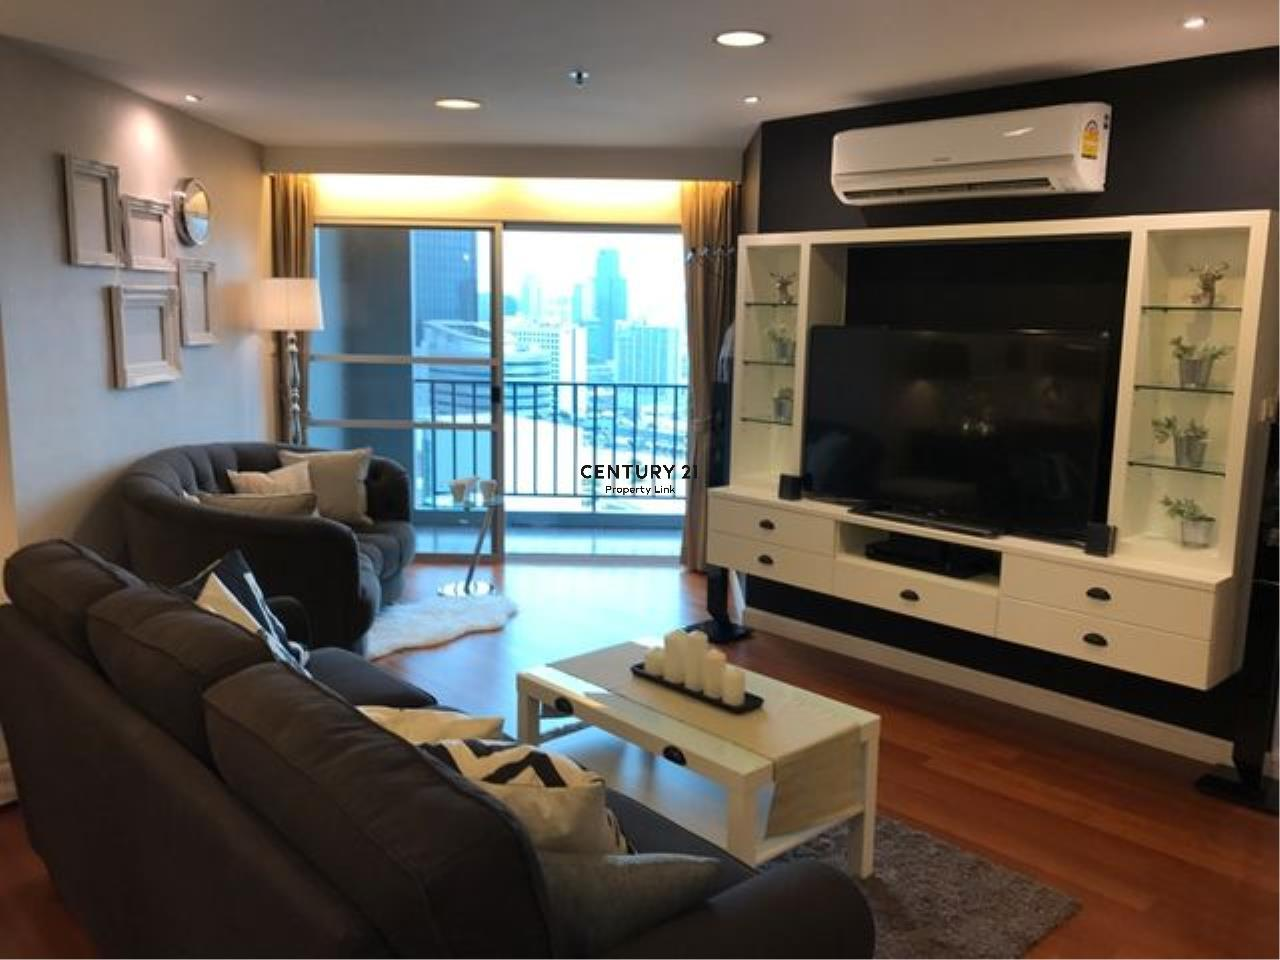 Century21 Property Link Agency's 39-CC-61594 BELLE GRAND RAMA 9 Condo for rent 3 bedrooms BTS RAMA 9 Huai Khwang Rental 89,000 THB./ month 3